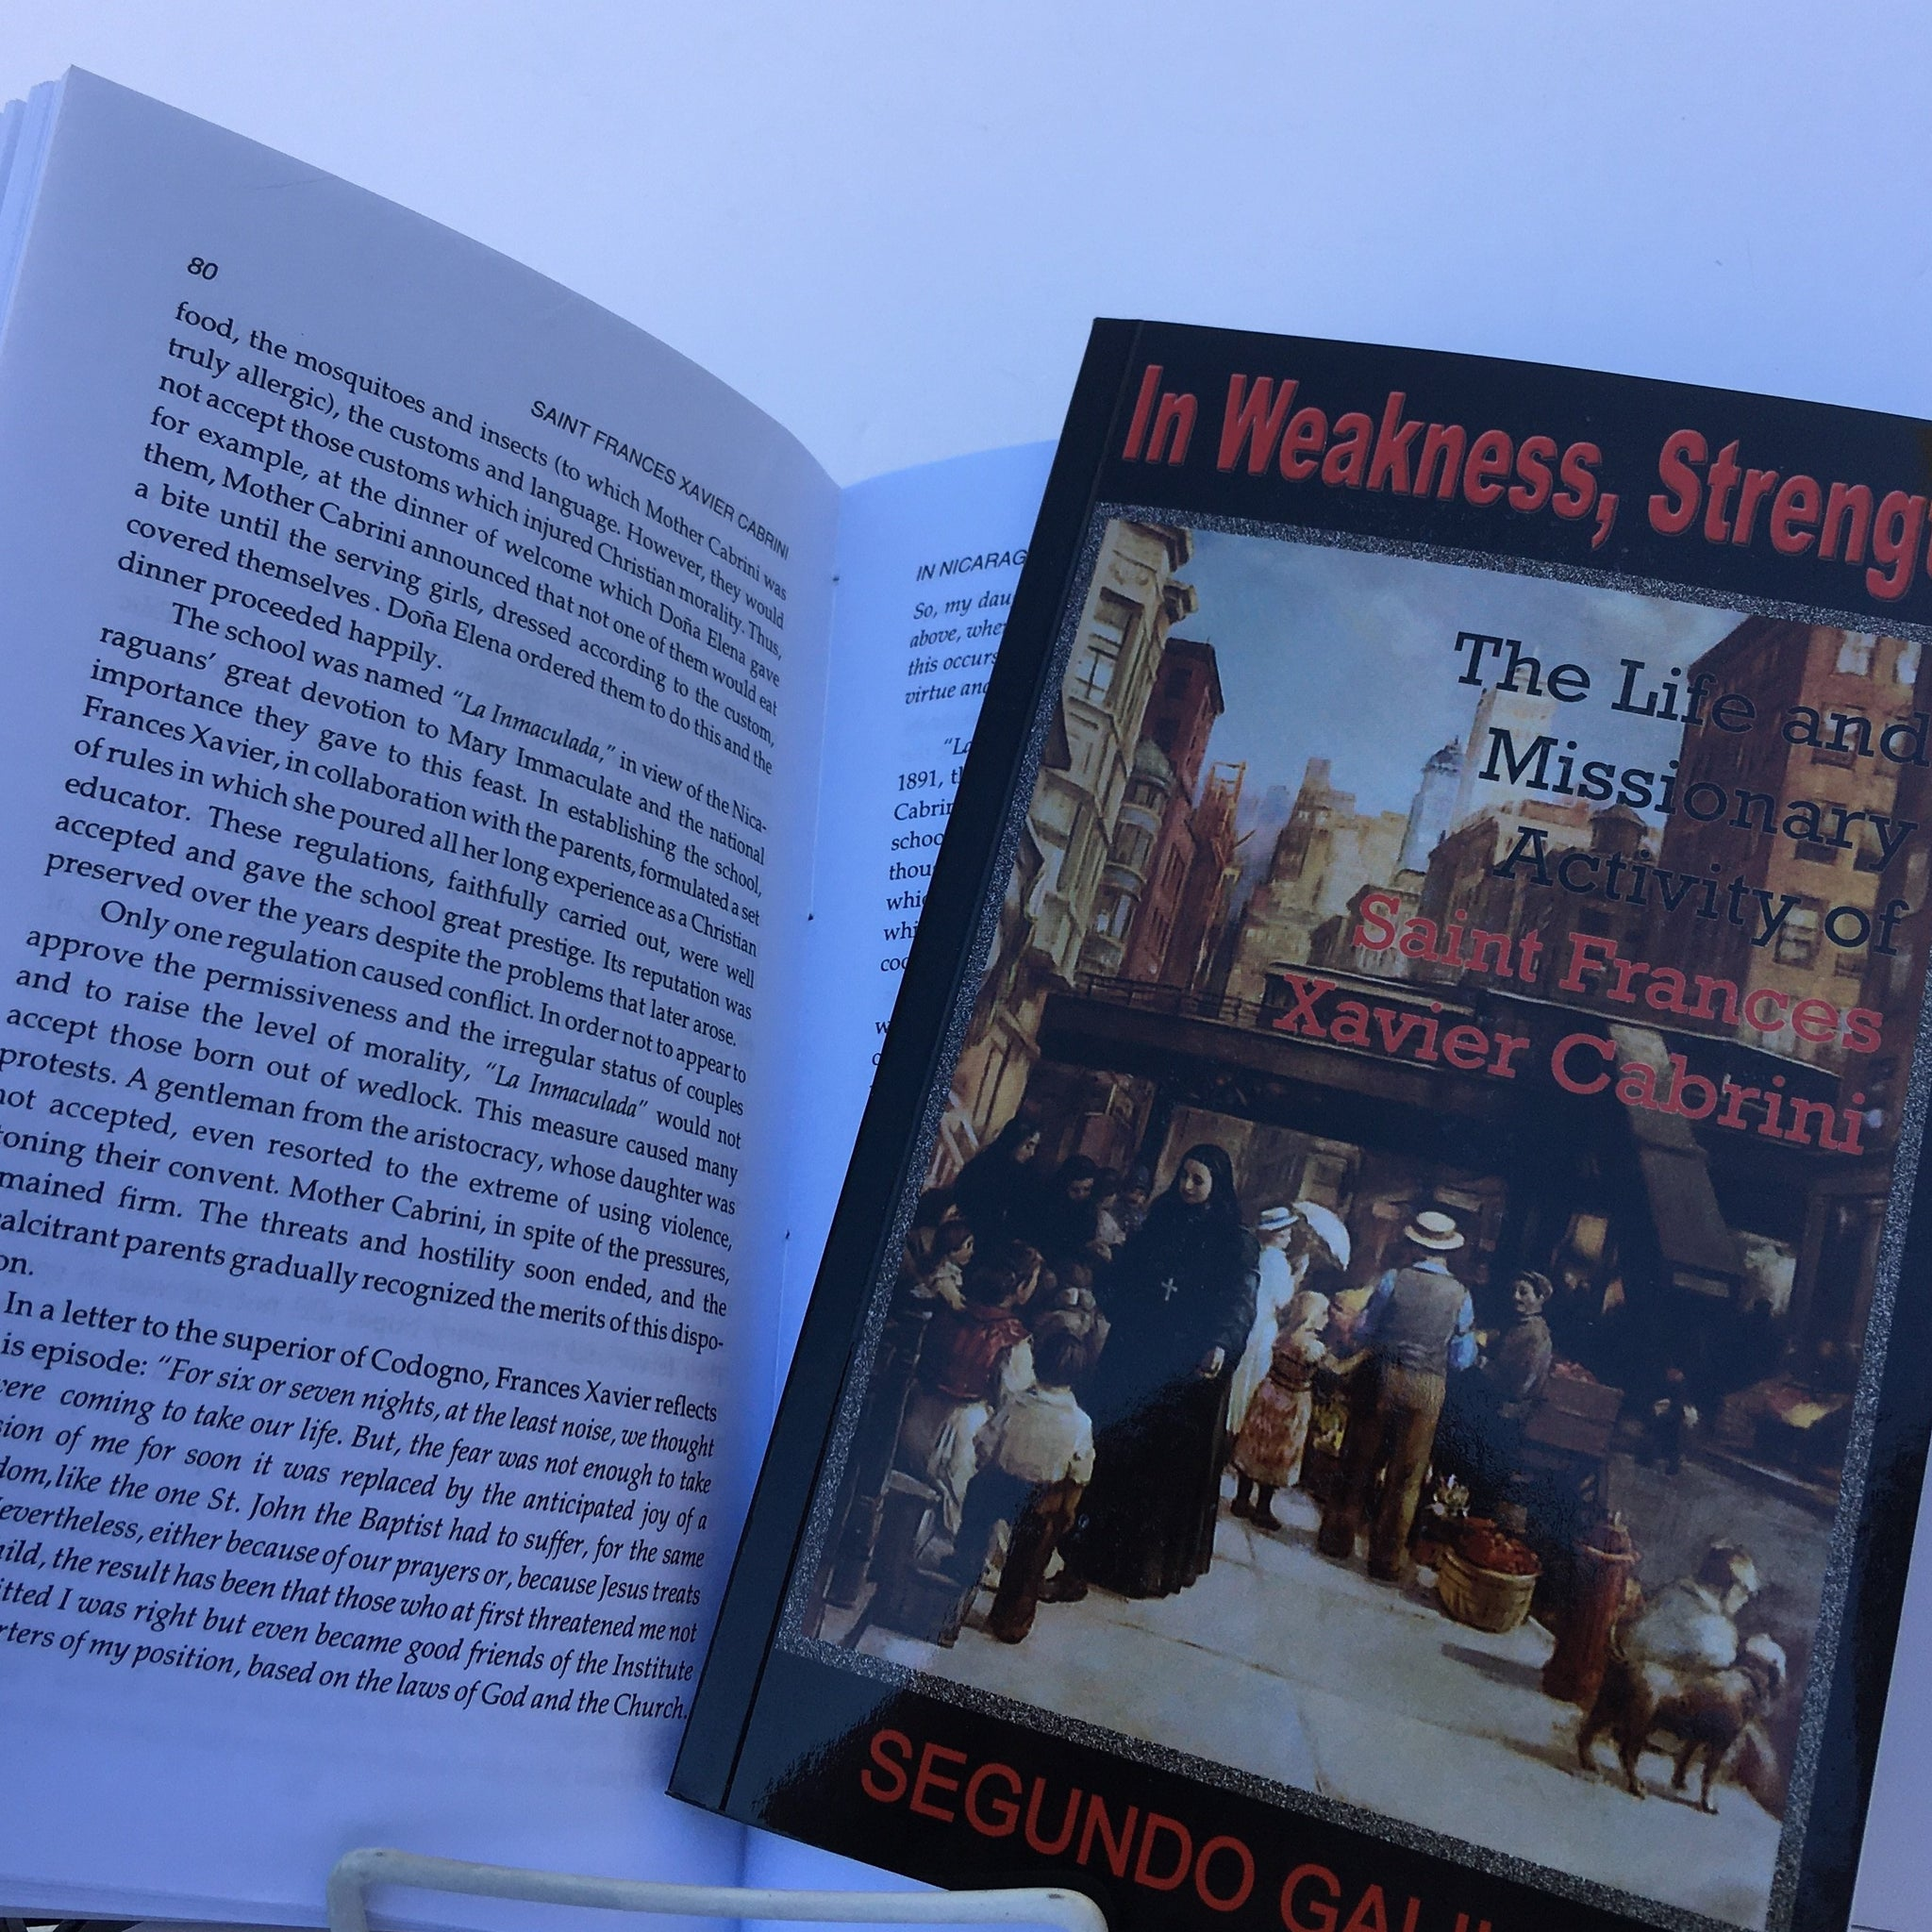 In Weakness, Strength- Mother Cabrini